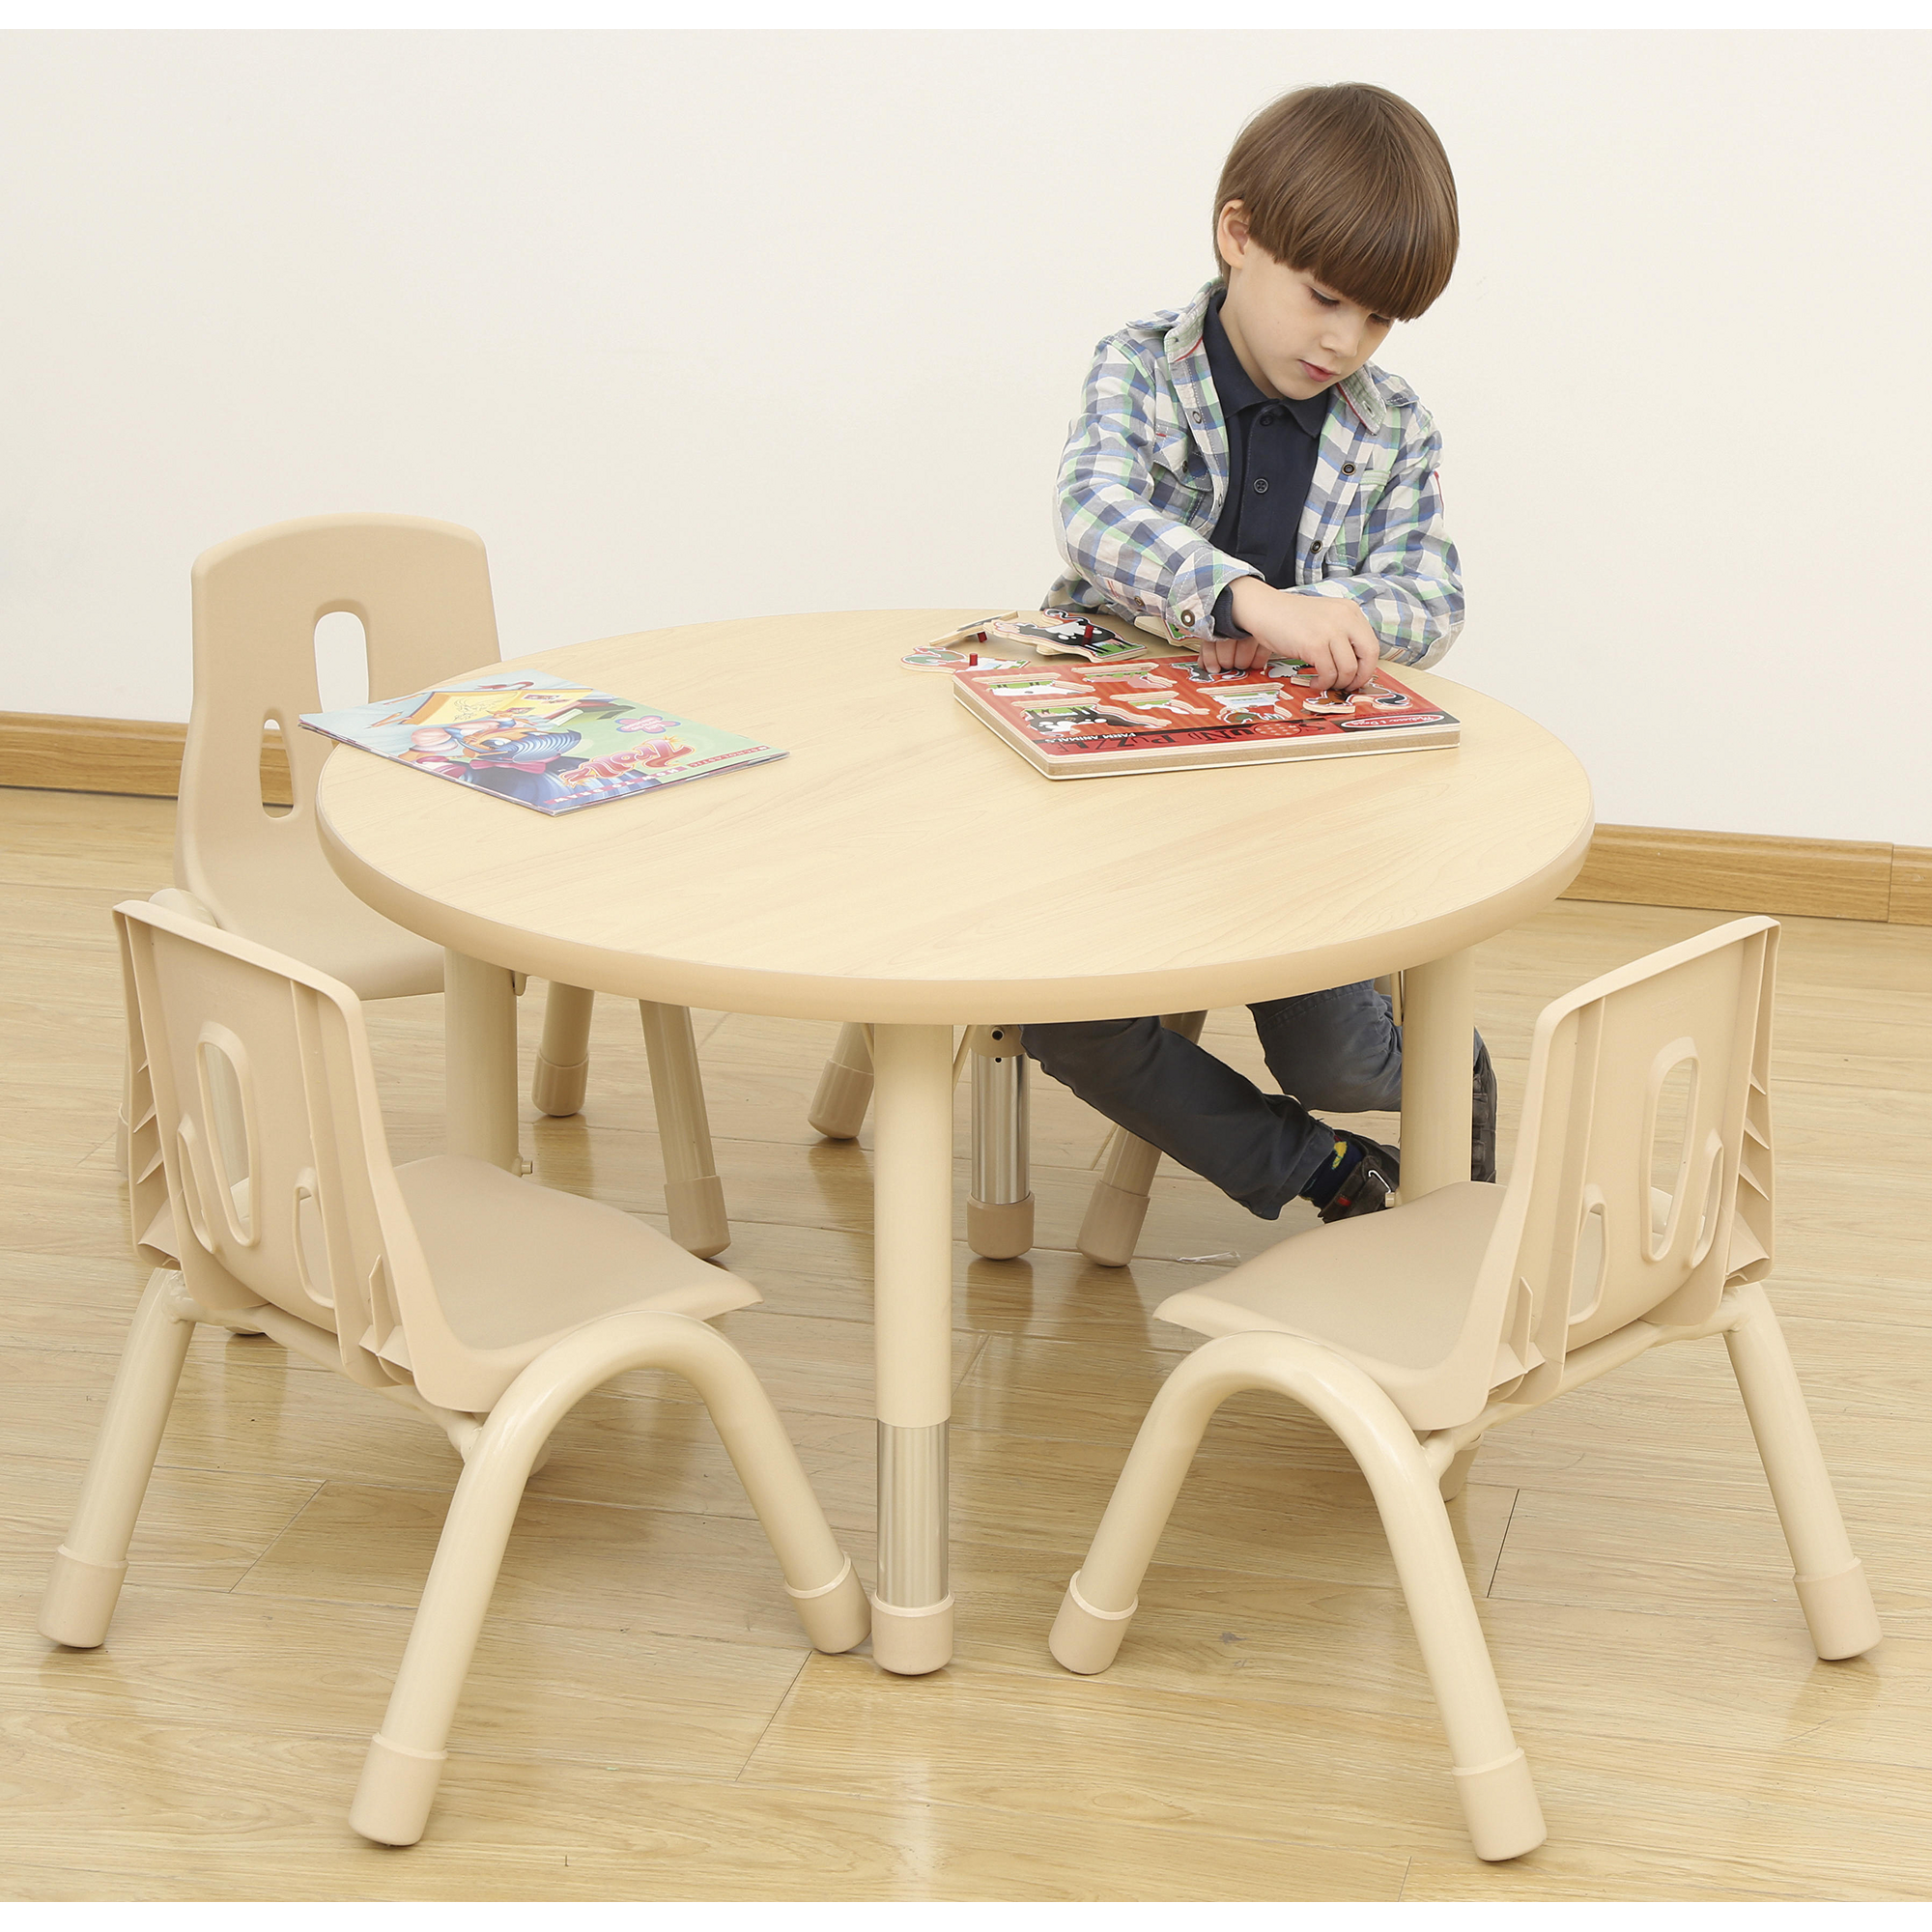 Elegant Circular Table - 4 Seater with 4 Chairs | GLS Educational Supplies & Elegant Circular Table - 4 Seater with 4 Chairs | GLS Educational ...